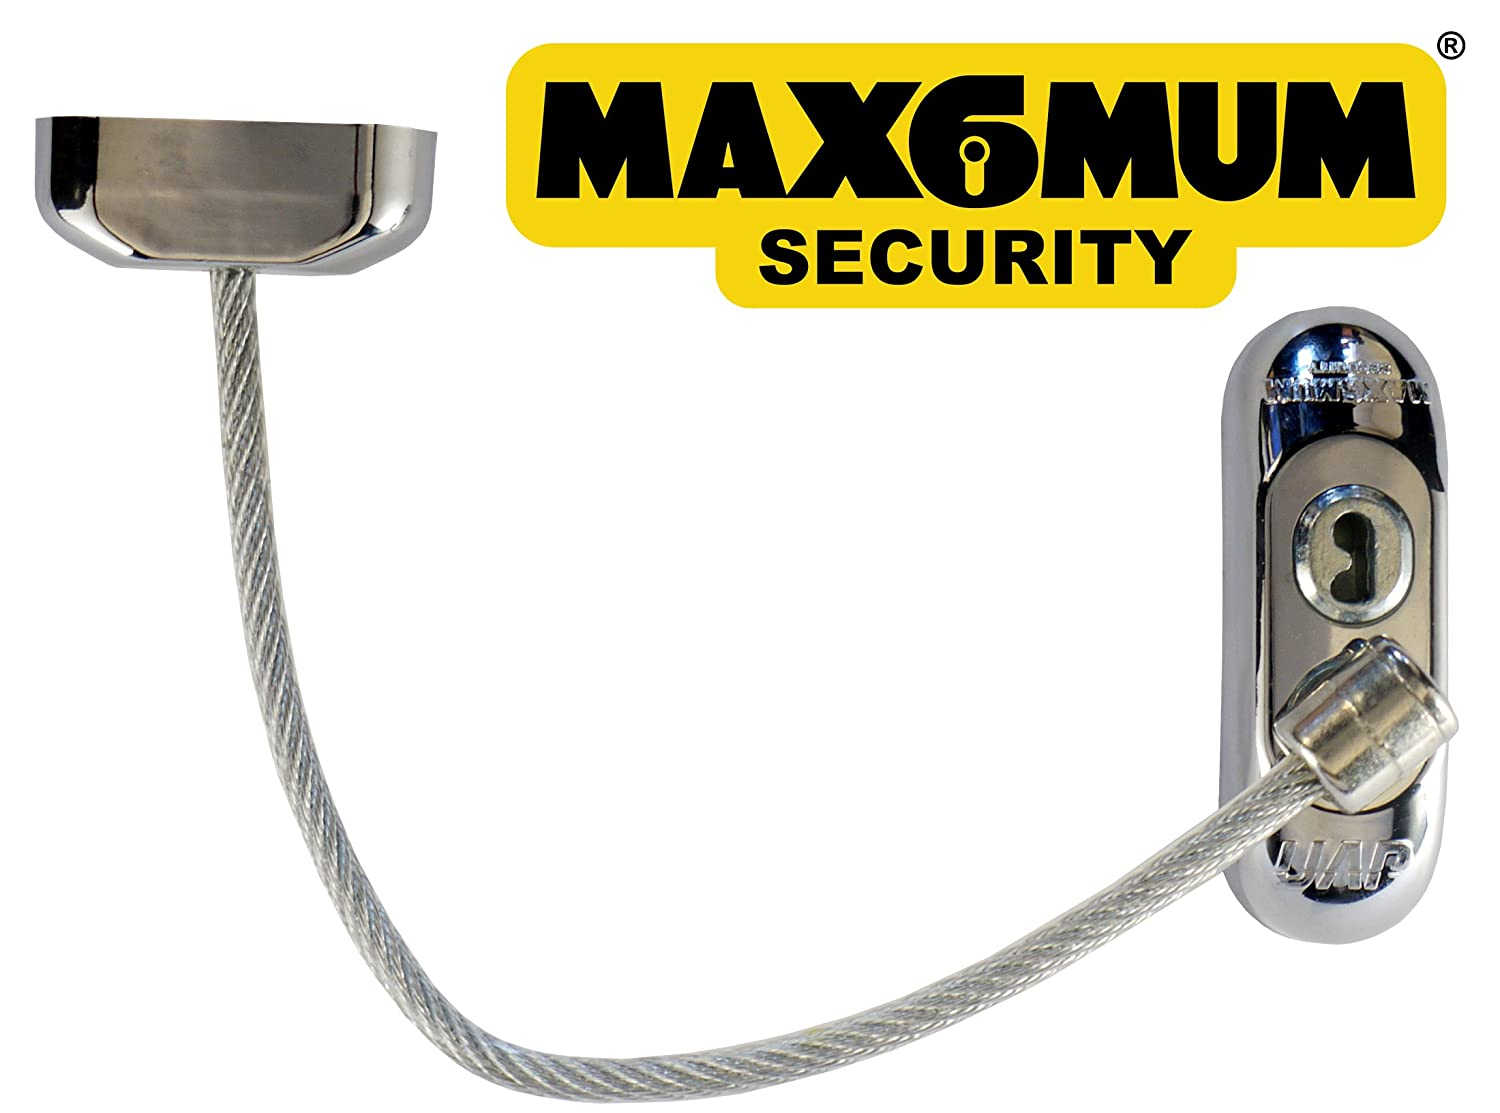 2 x Chrome MAX6MUM SECURITY Lockable Baby and Child Window and Door Safe Restrictors with Clear Cable